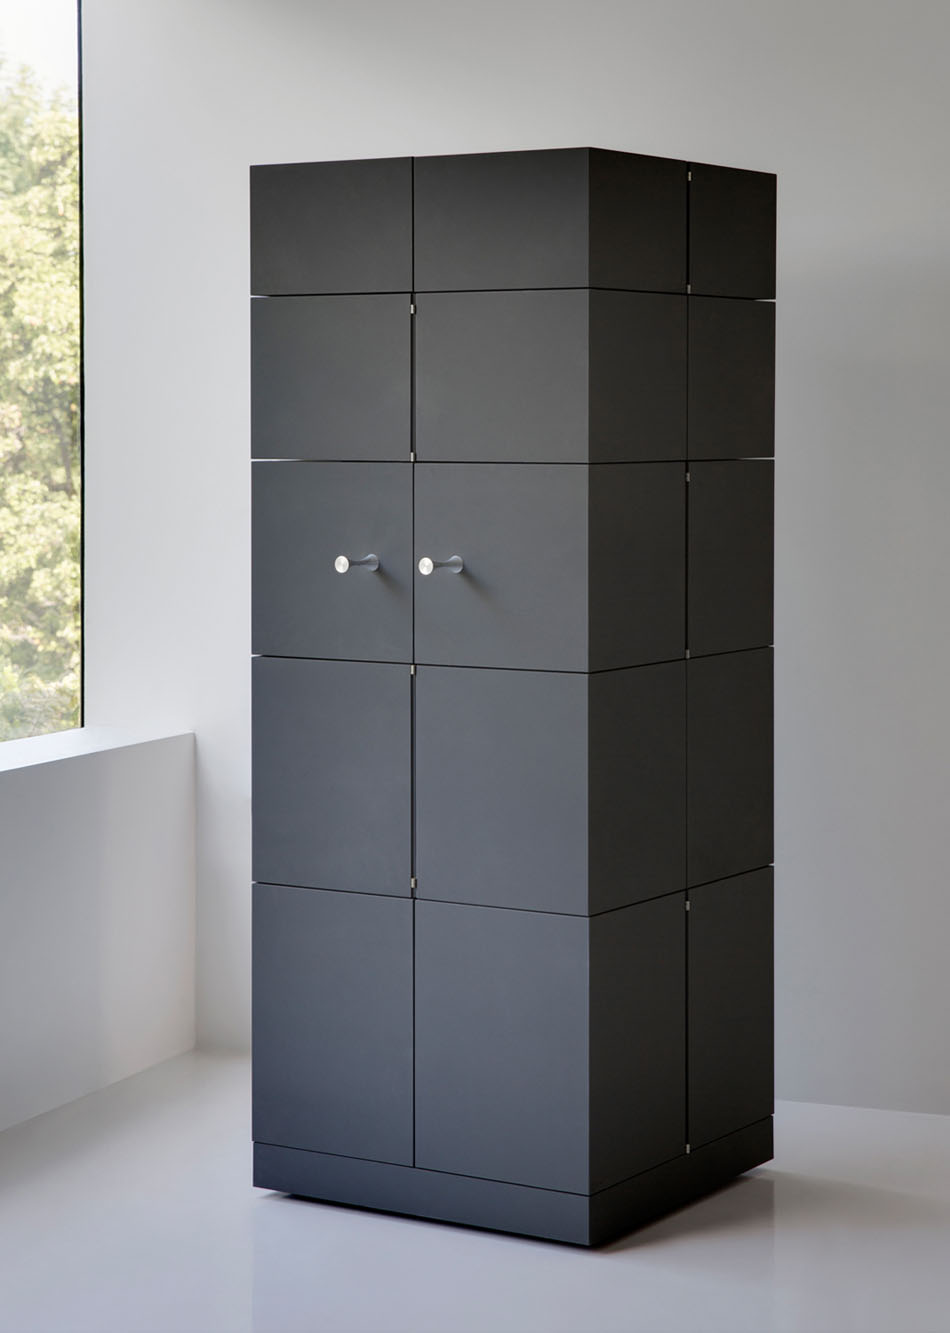 cube-cubrick-cabinet-compact